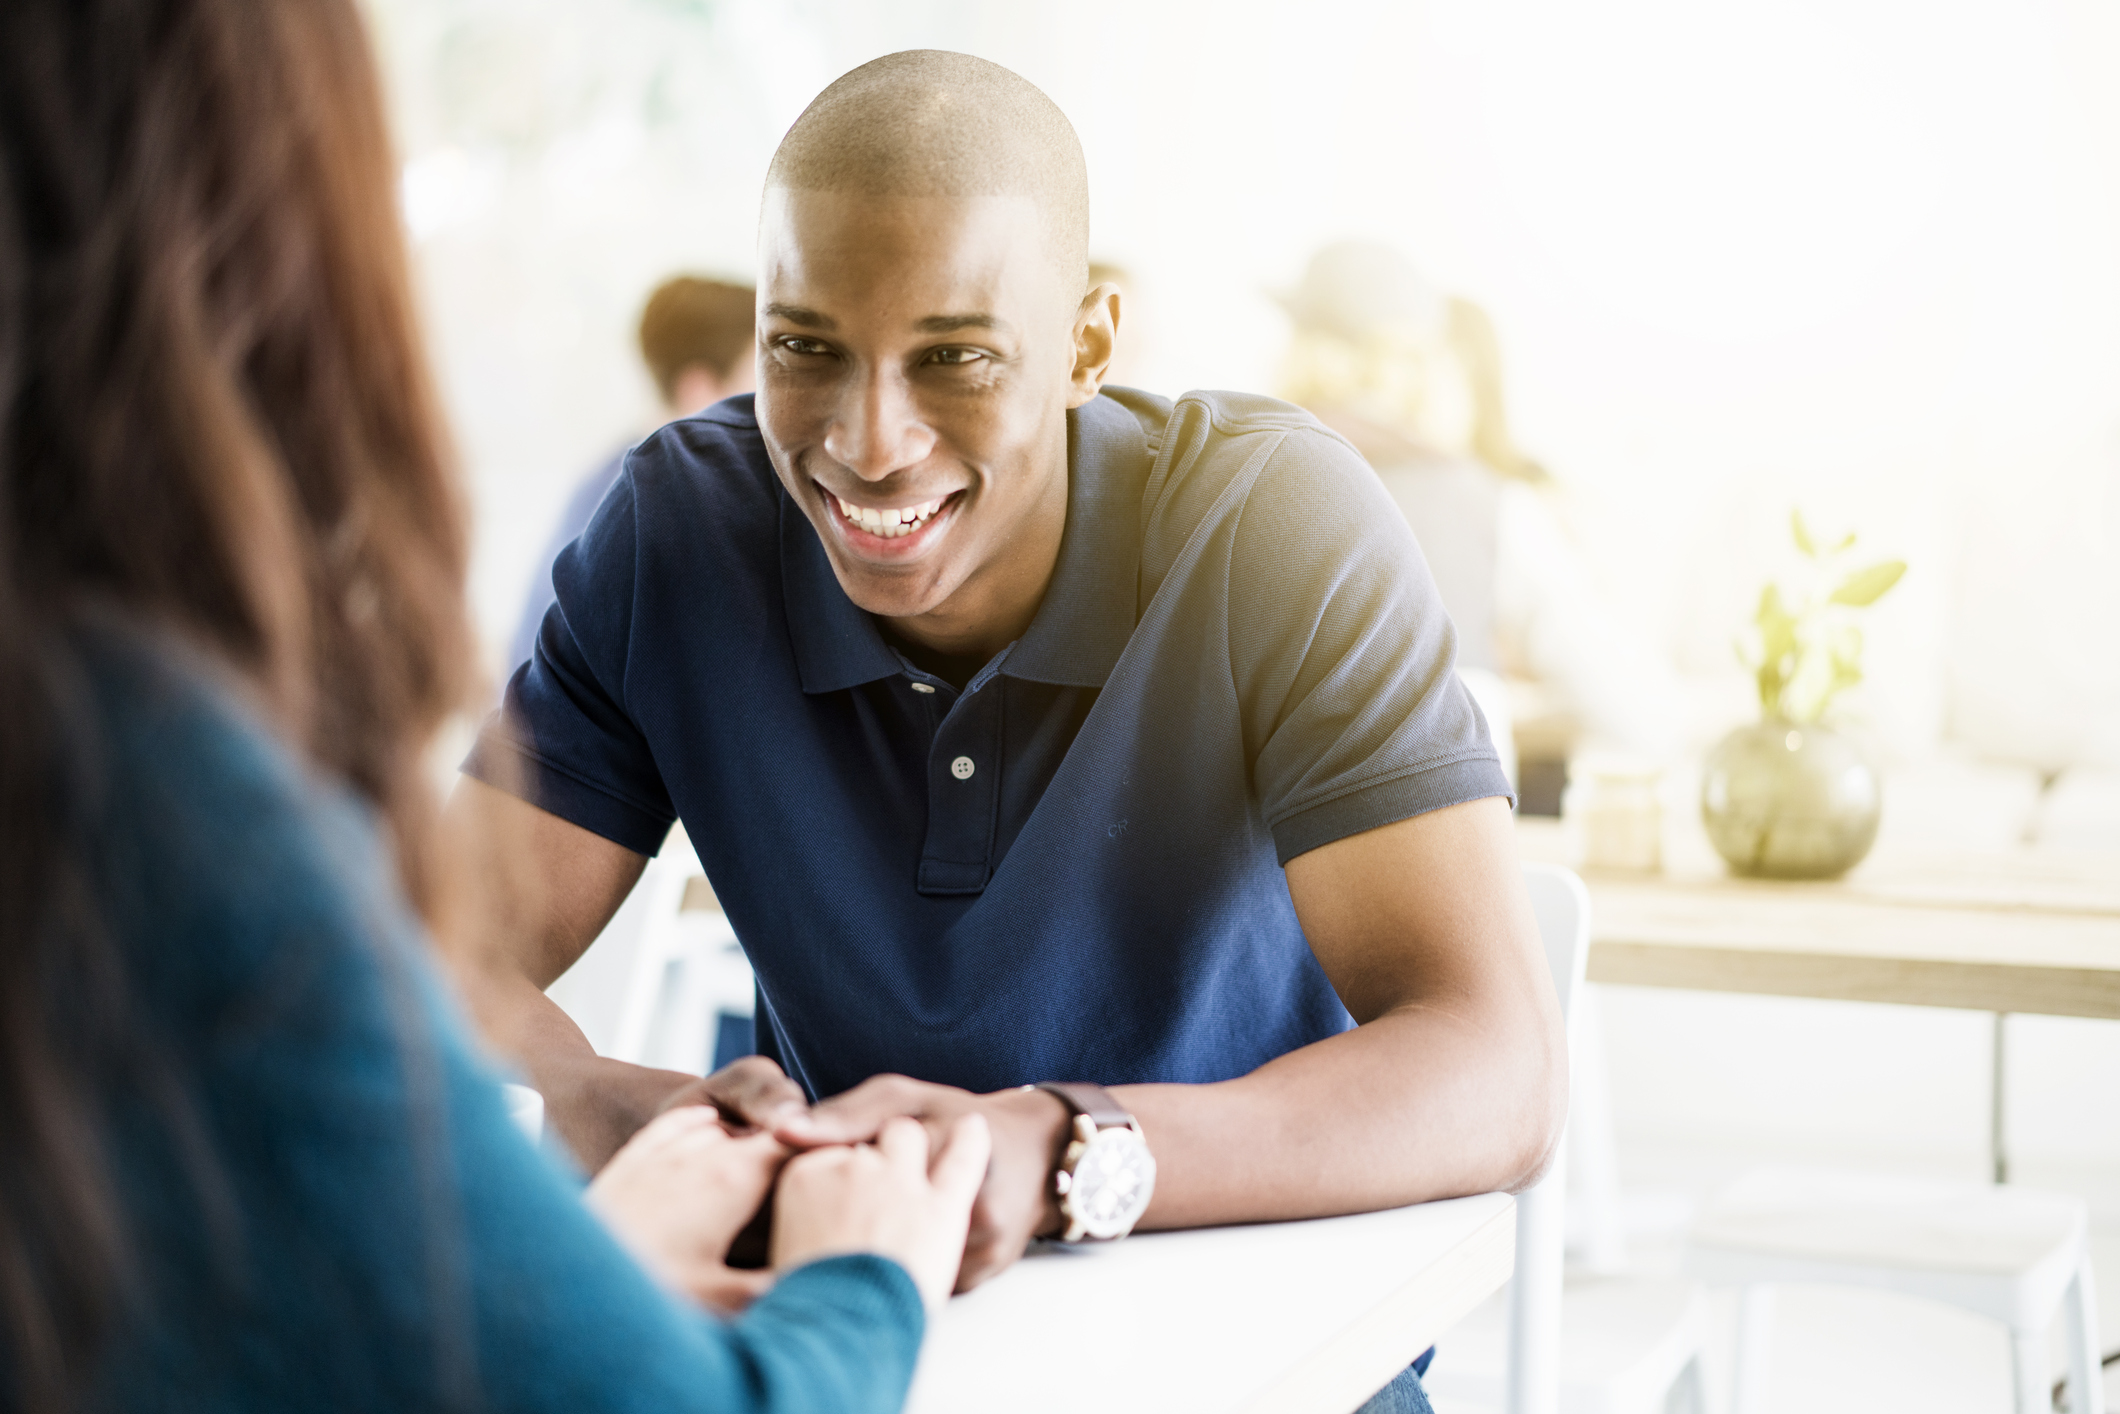 Smiling young man holding hands of woman in cafe